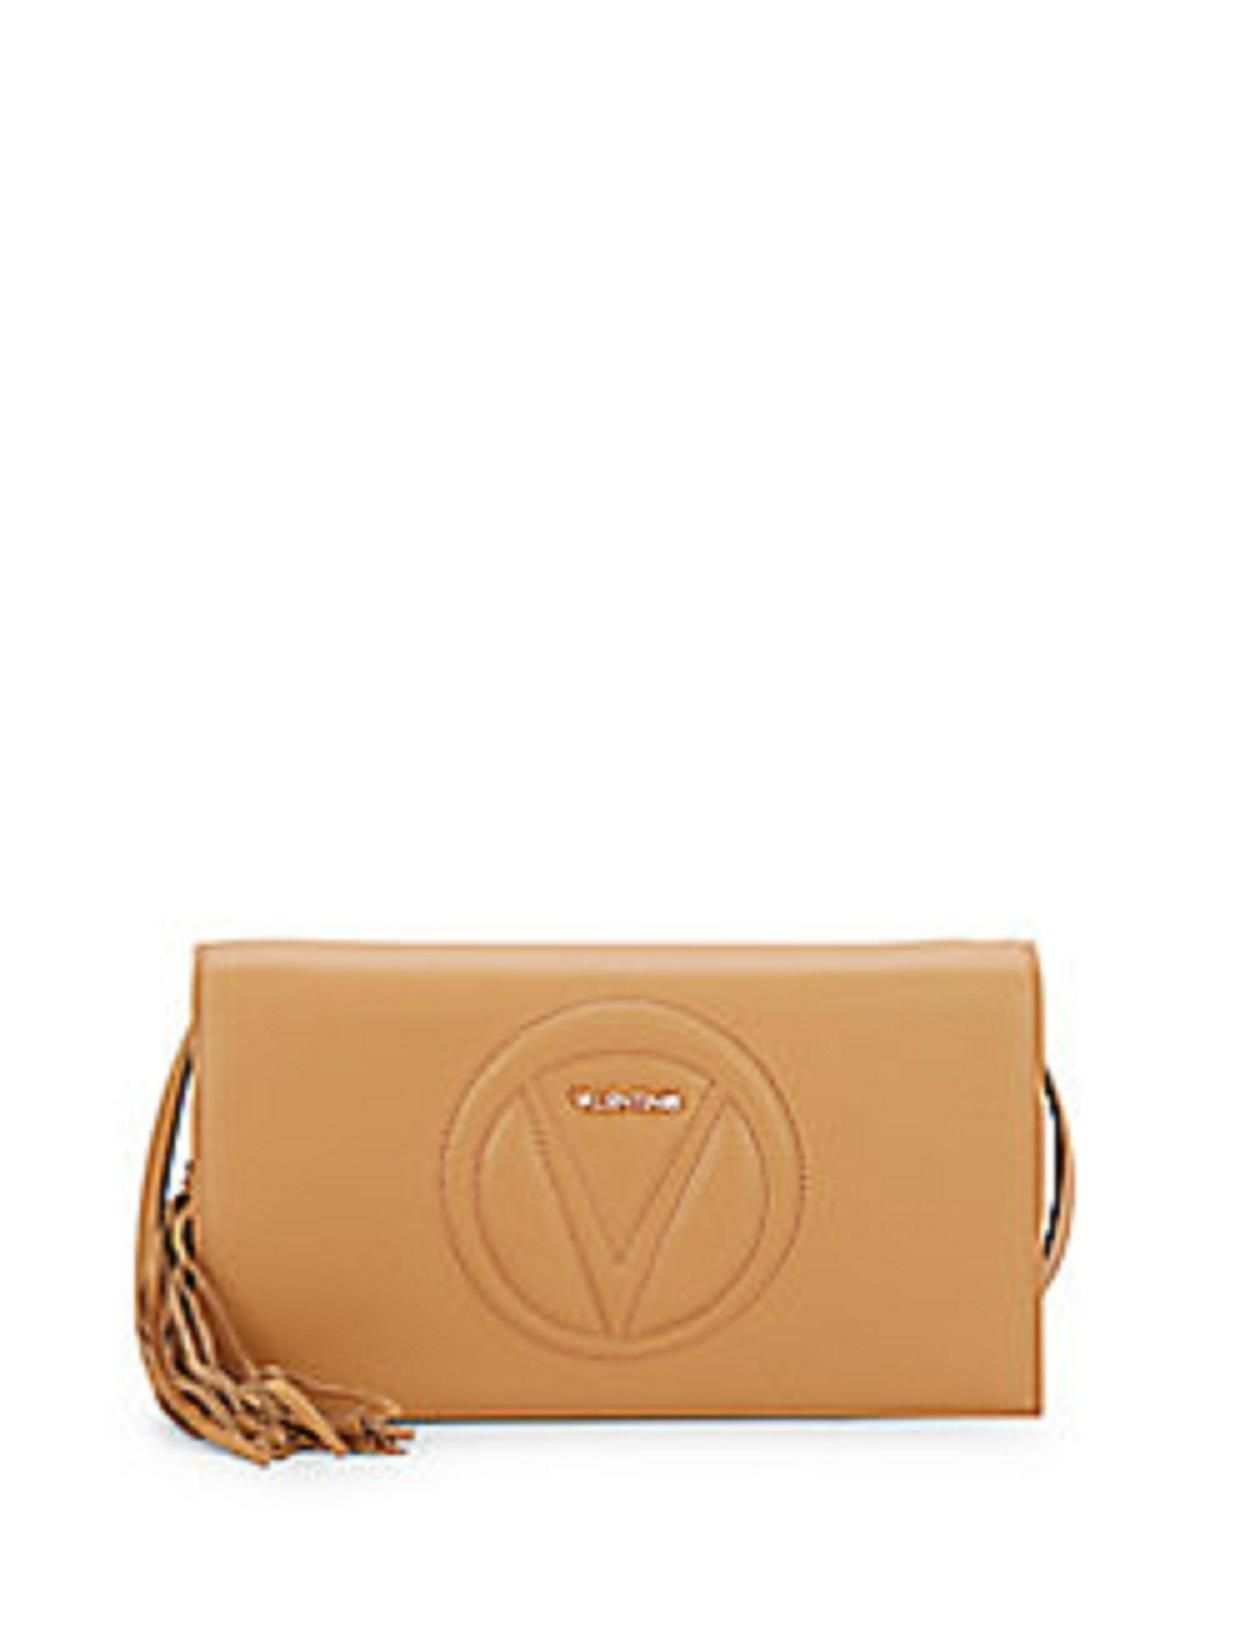 562875415e9 Get the trendiest Clutch of the season! The Valentino By Mario Lena Leather  Cross-body Caramello Clutch is a top 10 member favorite on Tradesy.